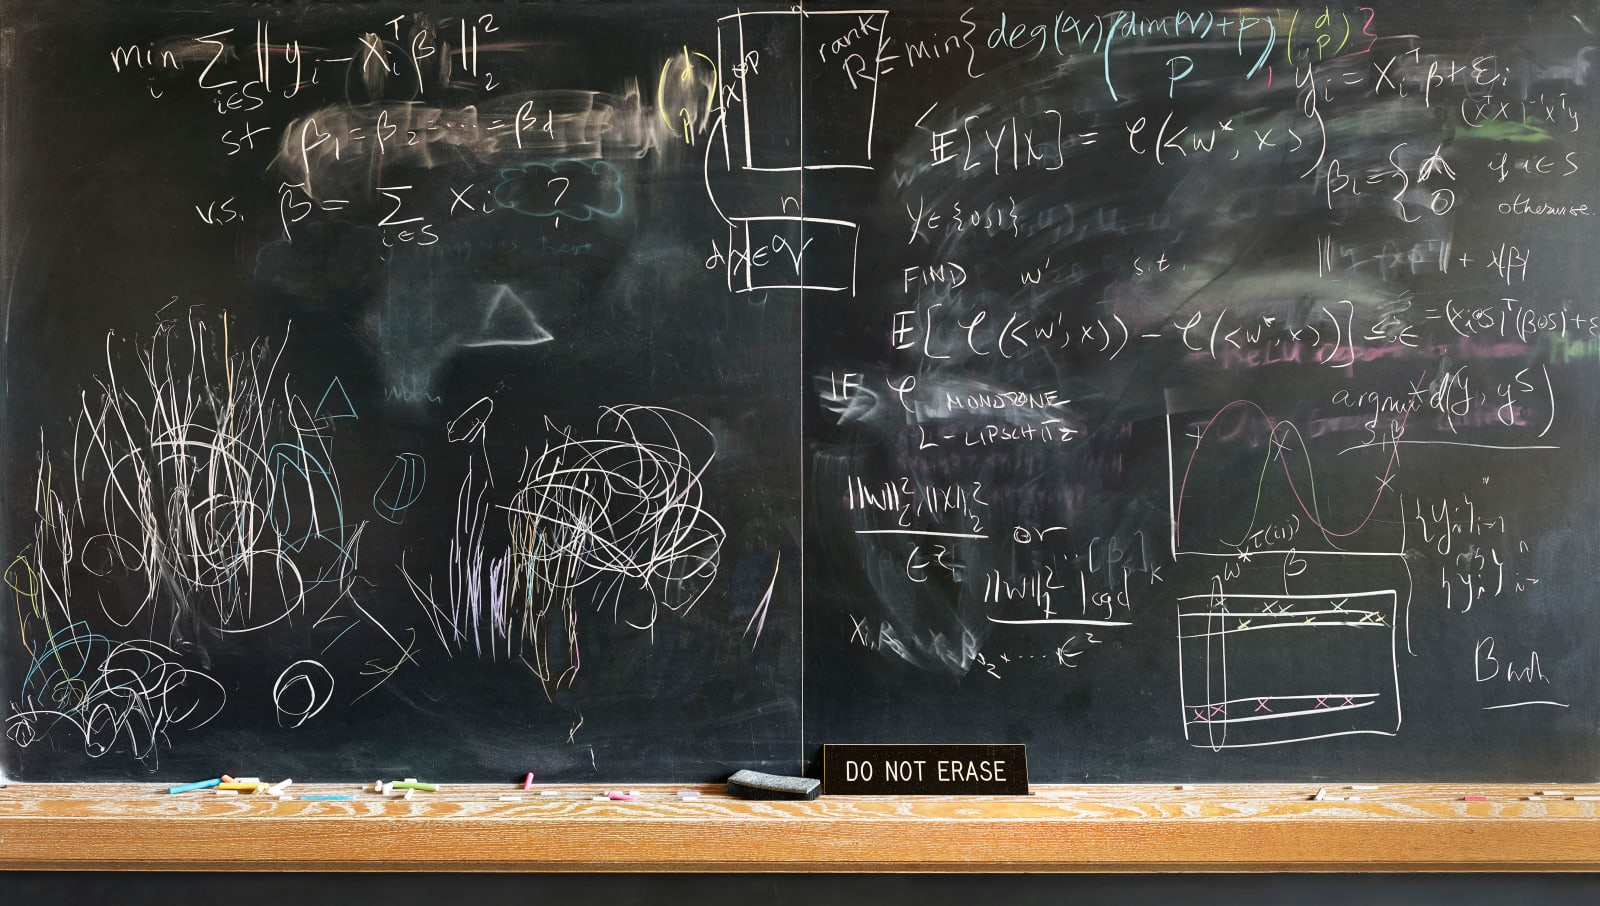 Blackboard with formulas in chalk, Do Not Erase sign on ledge, by Jessica Wynne